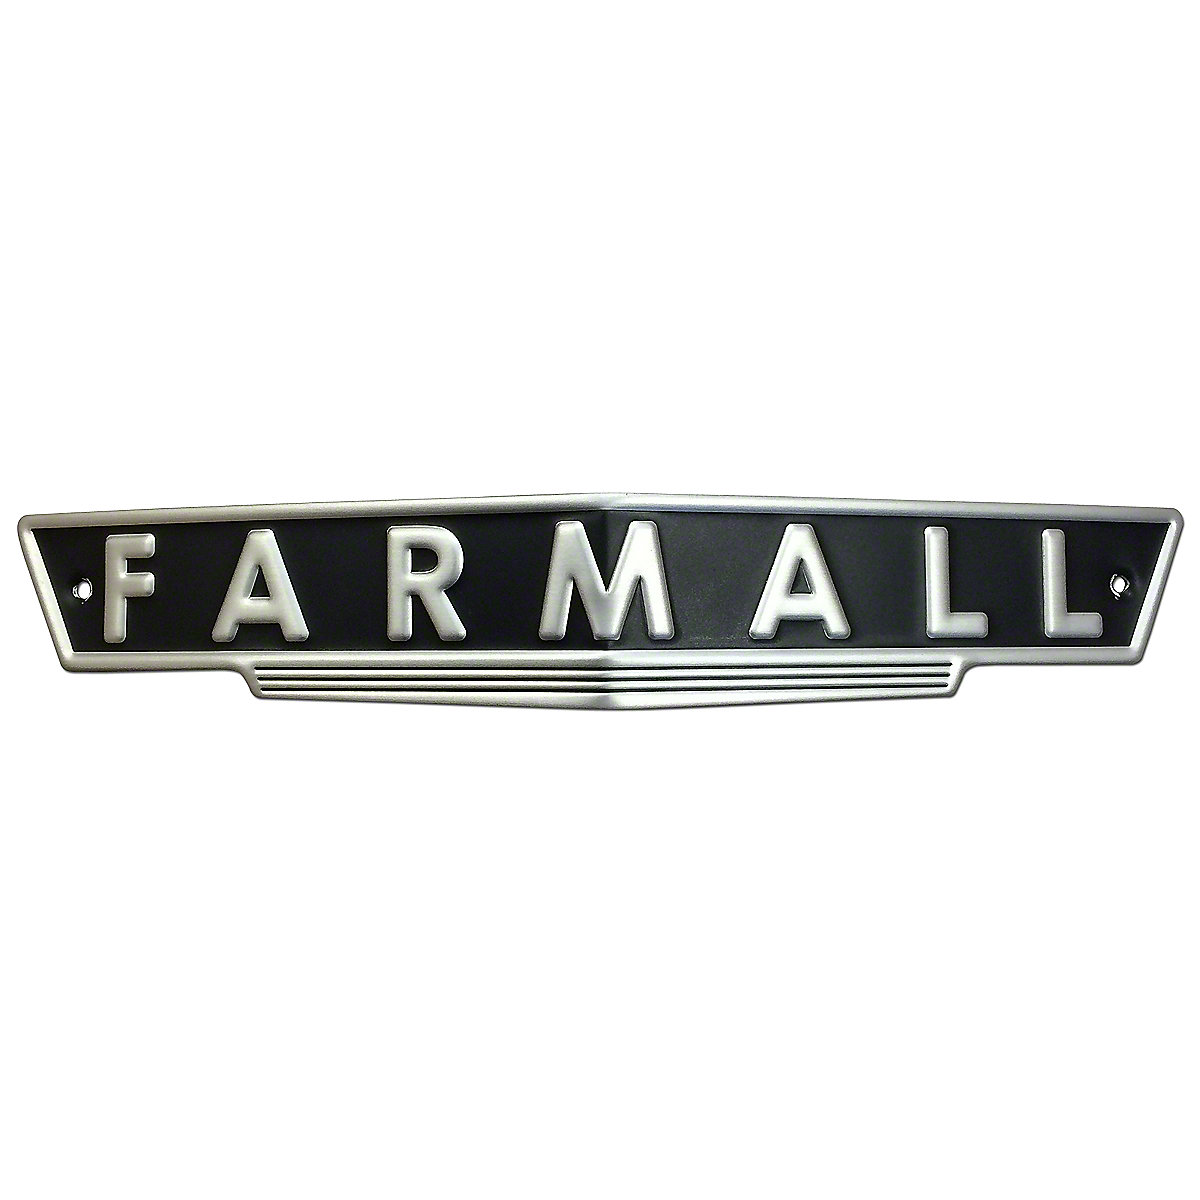 IHS194 Farmall front emblem for Farmall H models and Farmall M models